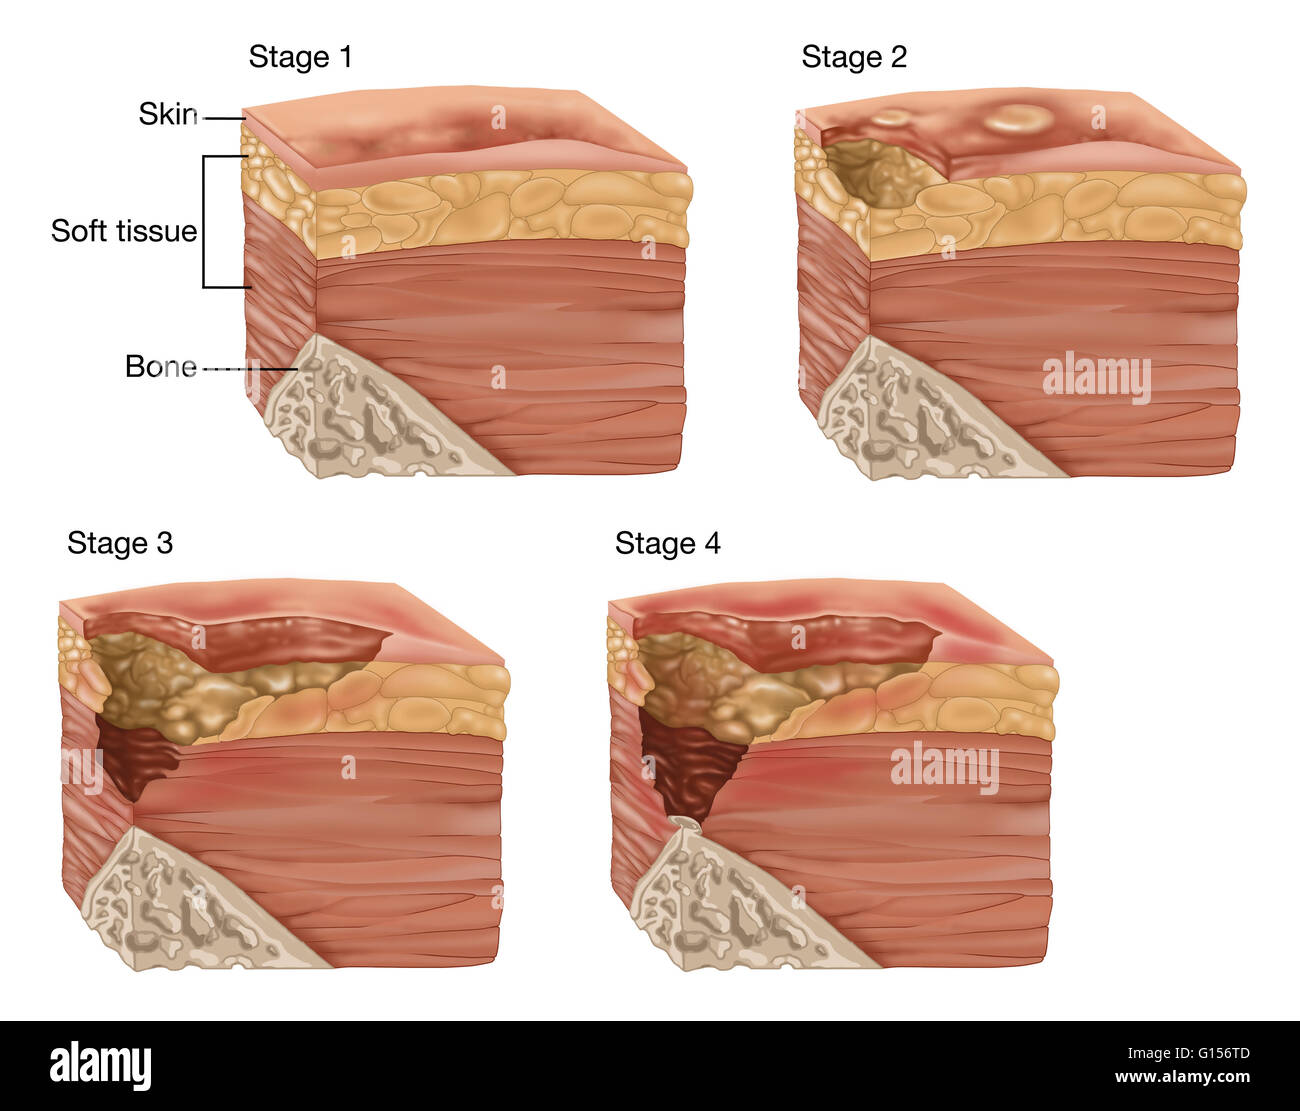 illustration showing the 4 stages of a bedsore or pressure sore